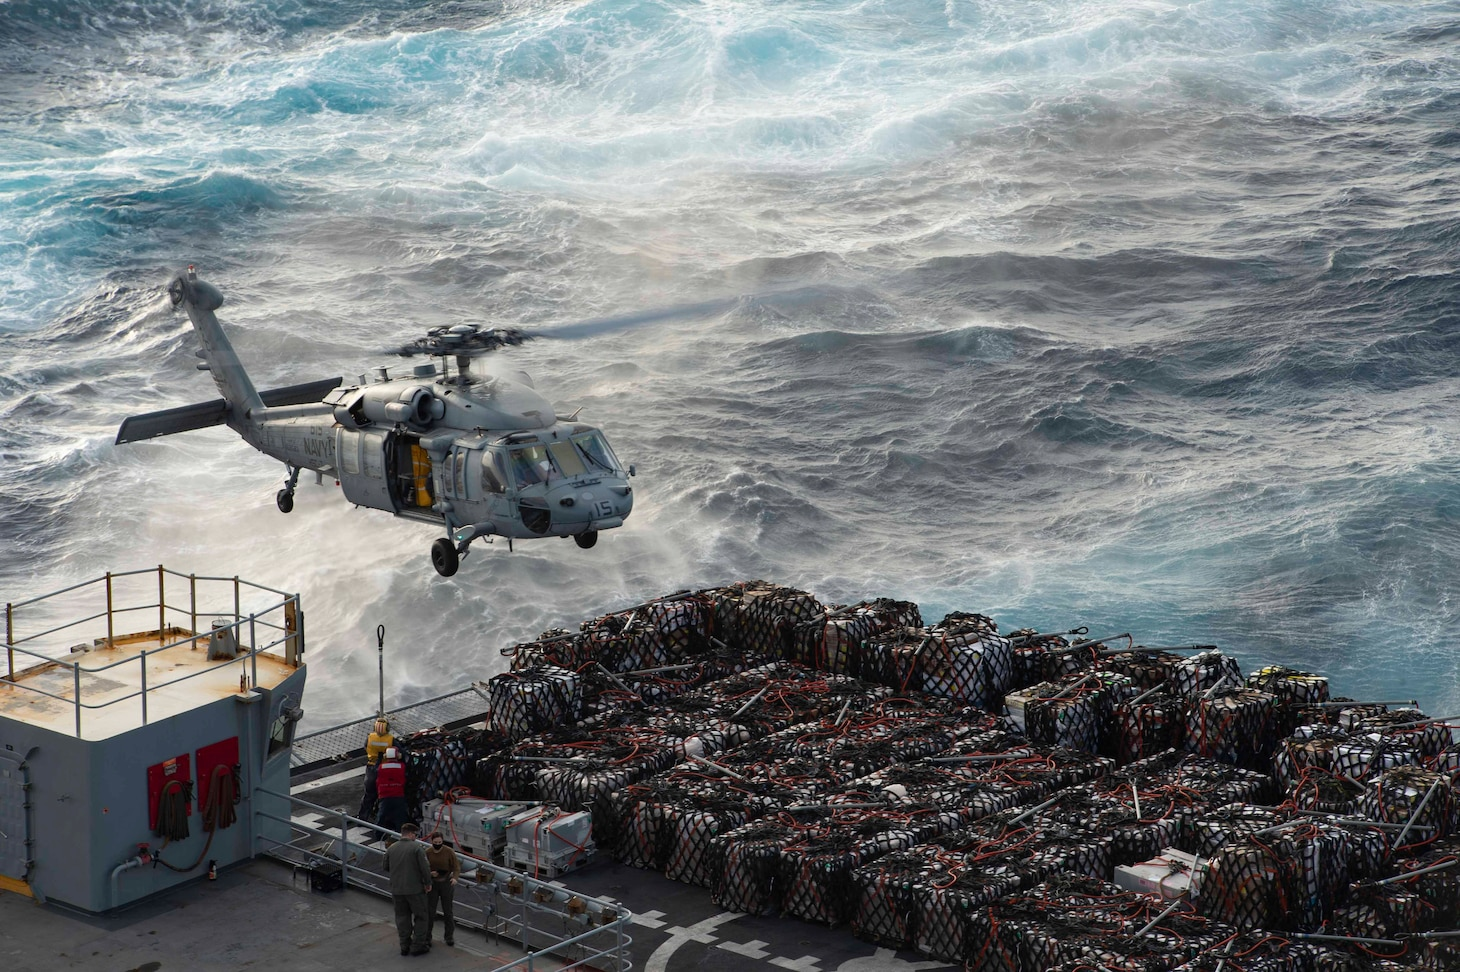 "210307-N-YD547-2074 ATLANTIC OCEAN (March 7, 2021) An MH-60S Sea Hawk, attached to the ""Dusty Dogs"" of Helicopter Sea Combat Squadron (HSC) 7, transports supplies from the fast-combat support ship USNS Arctic (T-AOE 8) to the Nimitz-class aircraft carrier USS Dwight D. Eisenhower (CVN 69), during a vertical-replenishment in the Atlantic Ocean, March 7, 2021. The IKE Carrier Strike Group is on a scheduled deployment in the U.S. Sixth Fleet area of operations in support of U.S. national interests and security in Europe and Africa. (U.S. Navy photo by Mass Communication Specialist Seaman Trent P. Hawkins/Released)"